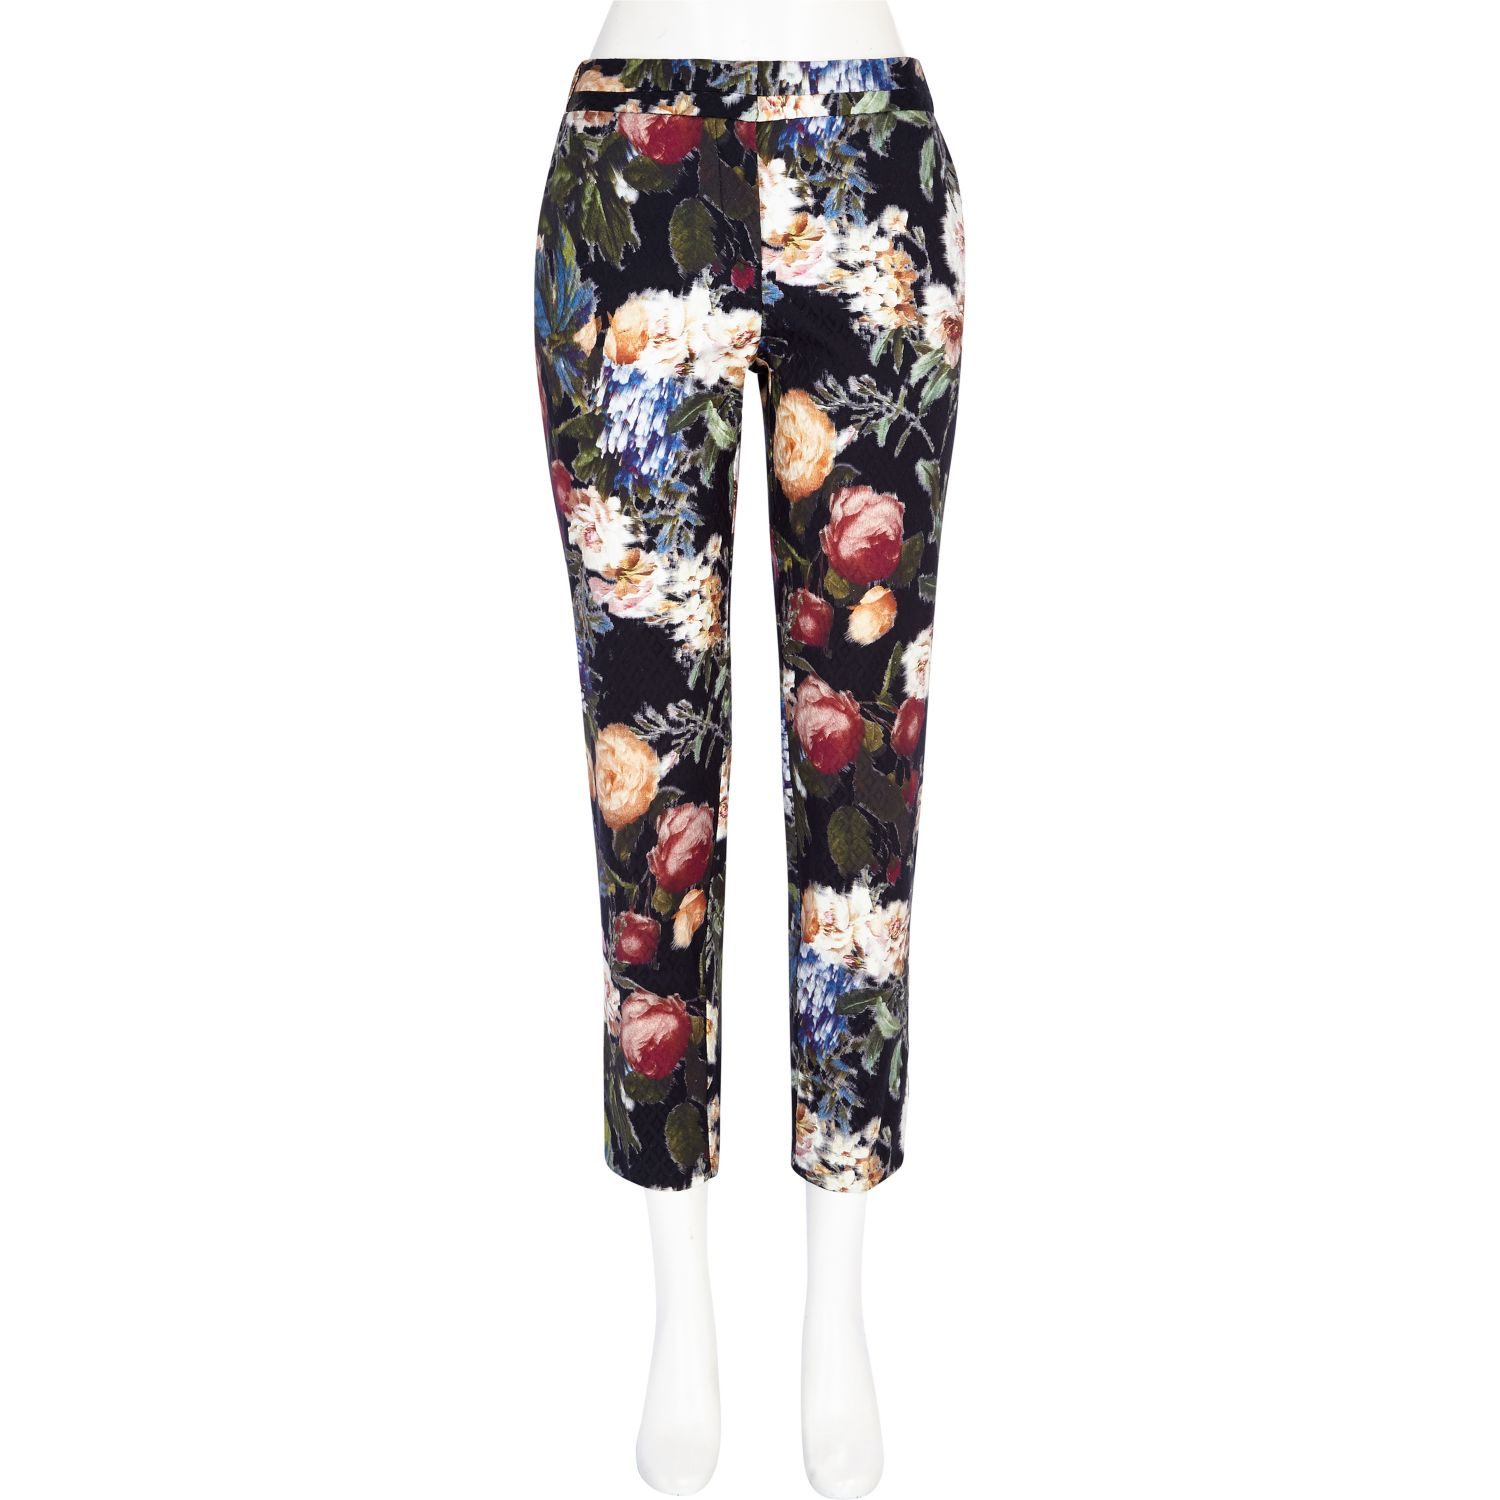 Available in Black Floral Print Pair with